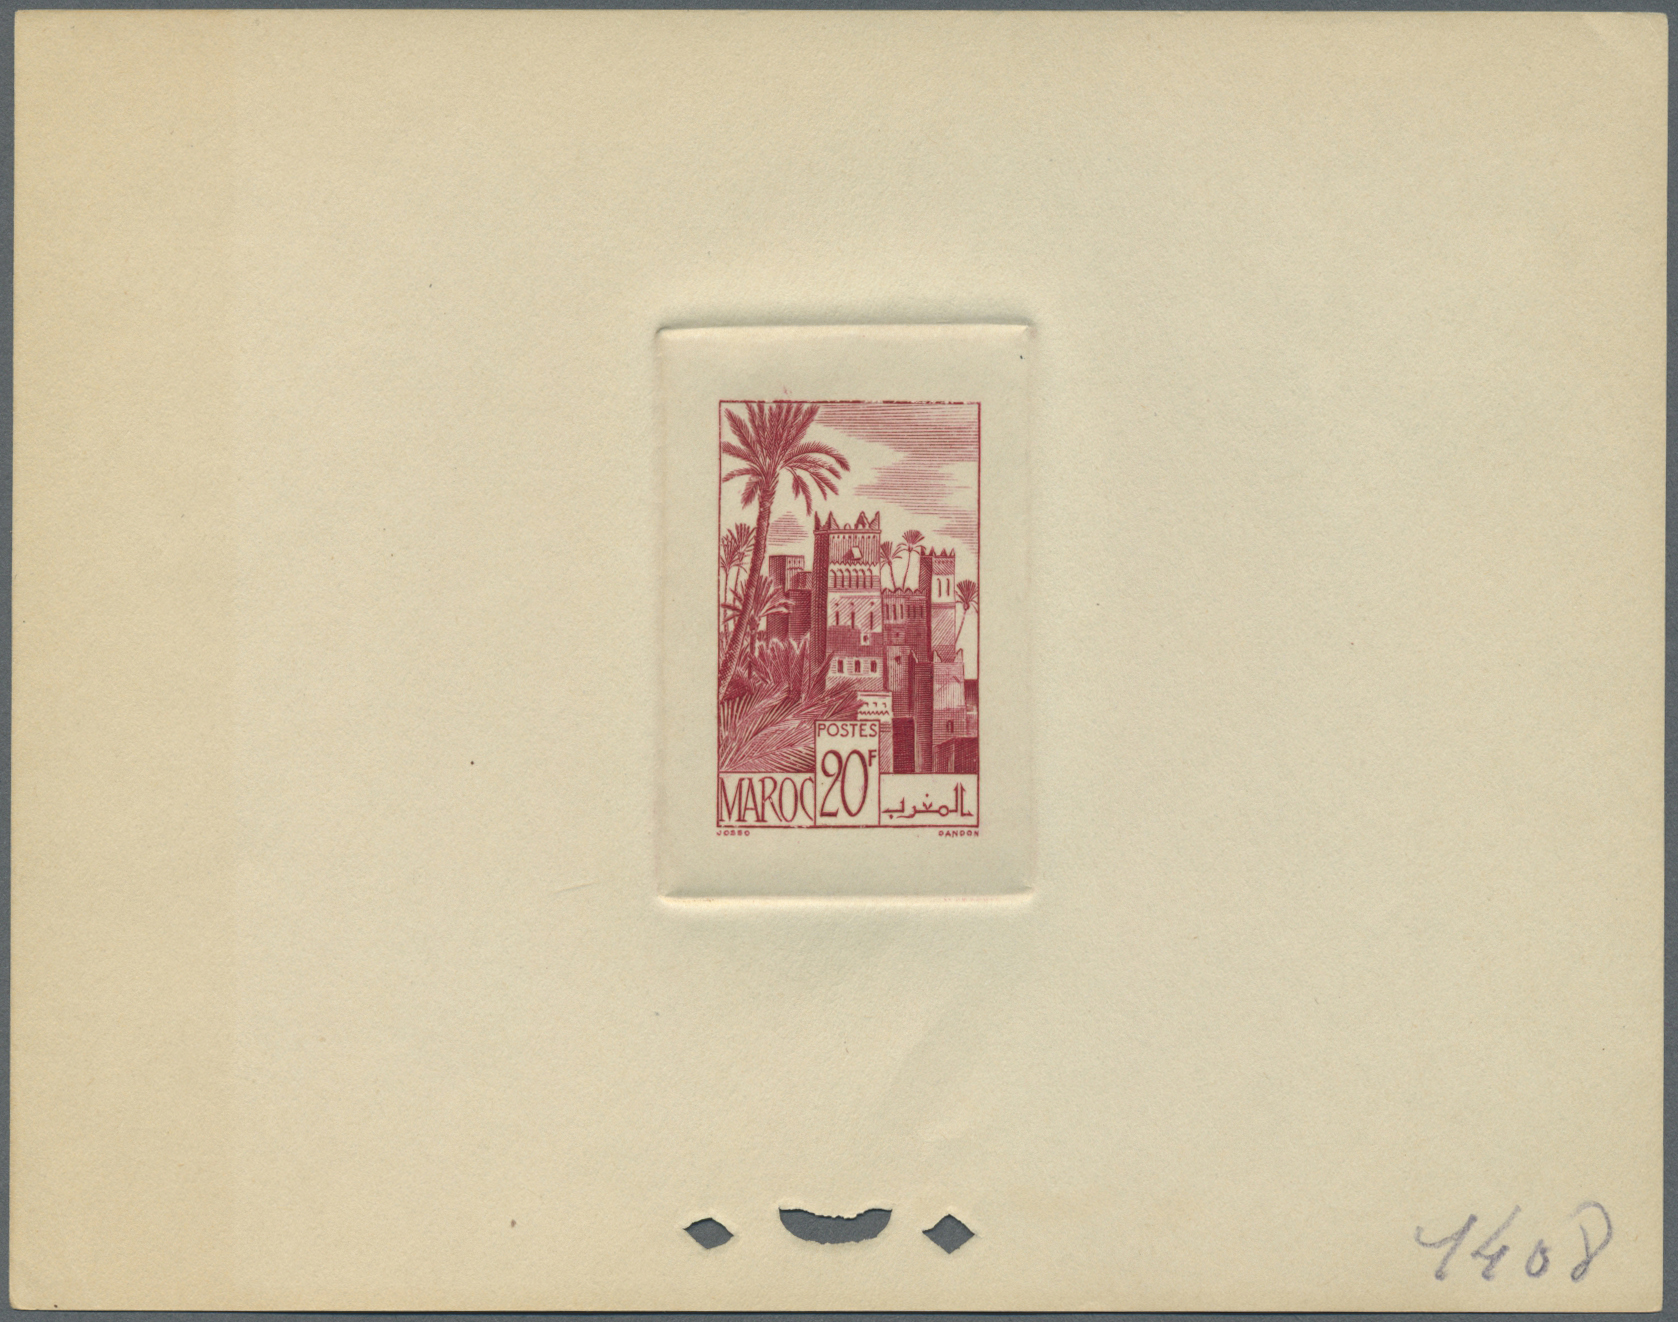 Behr Philatelie Mail Auction 38 Page 8: Single Lots Philately Overseas